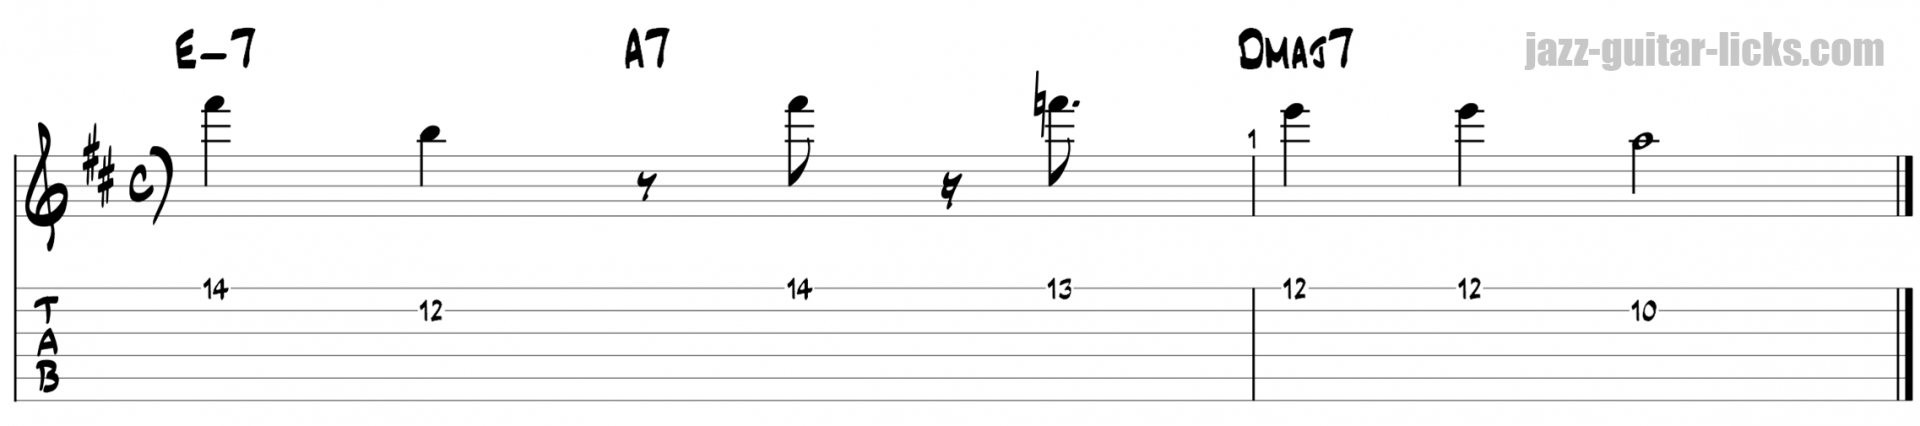 Miles davis line with tabs for guitar